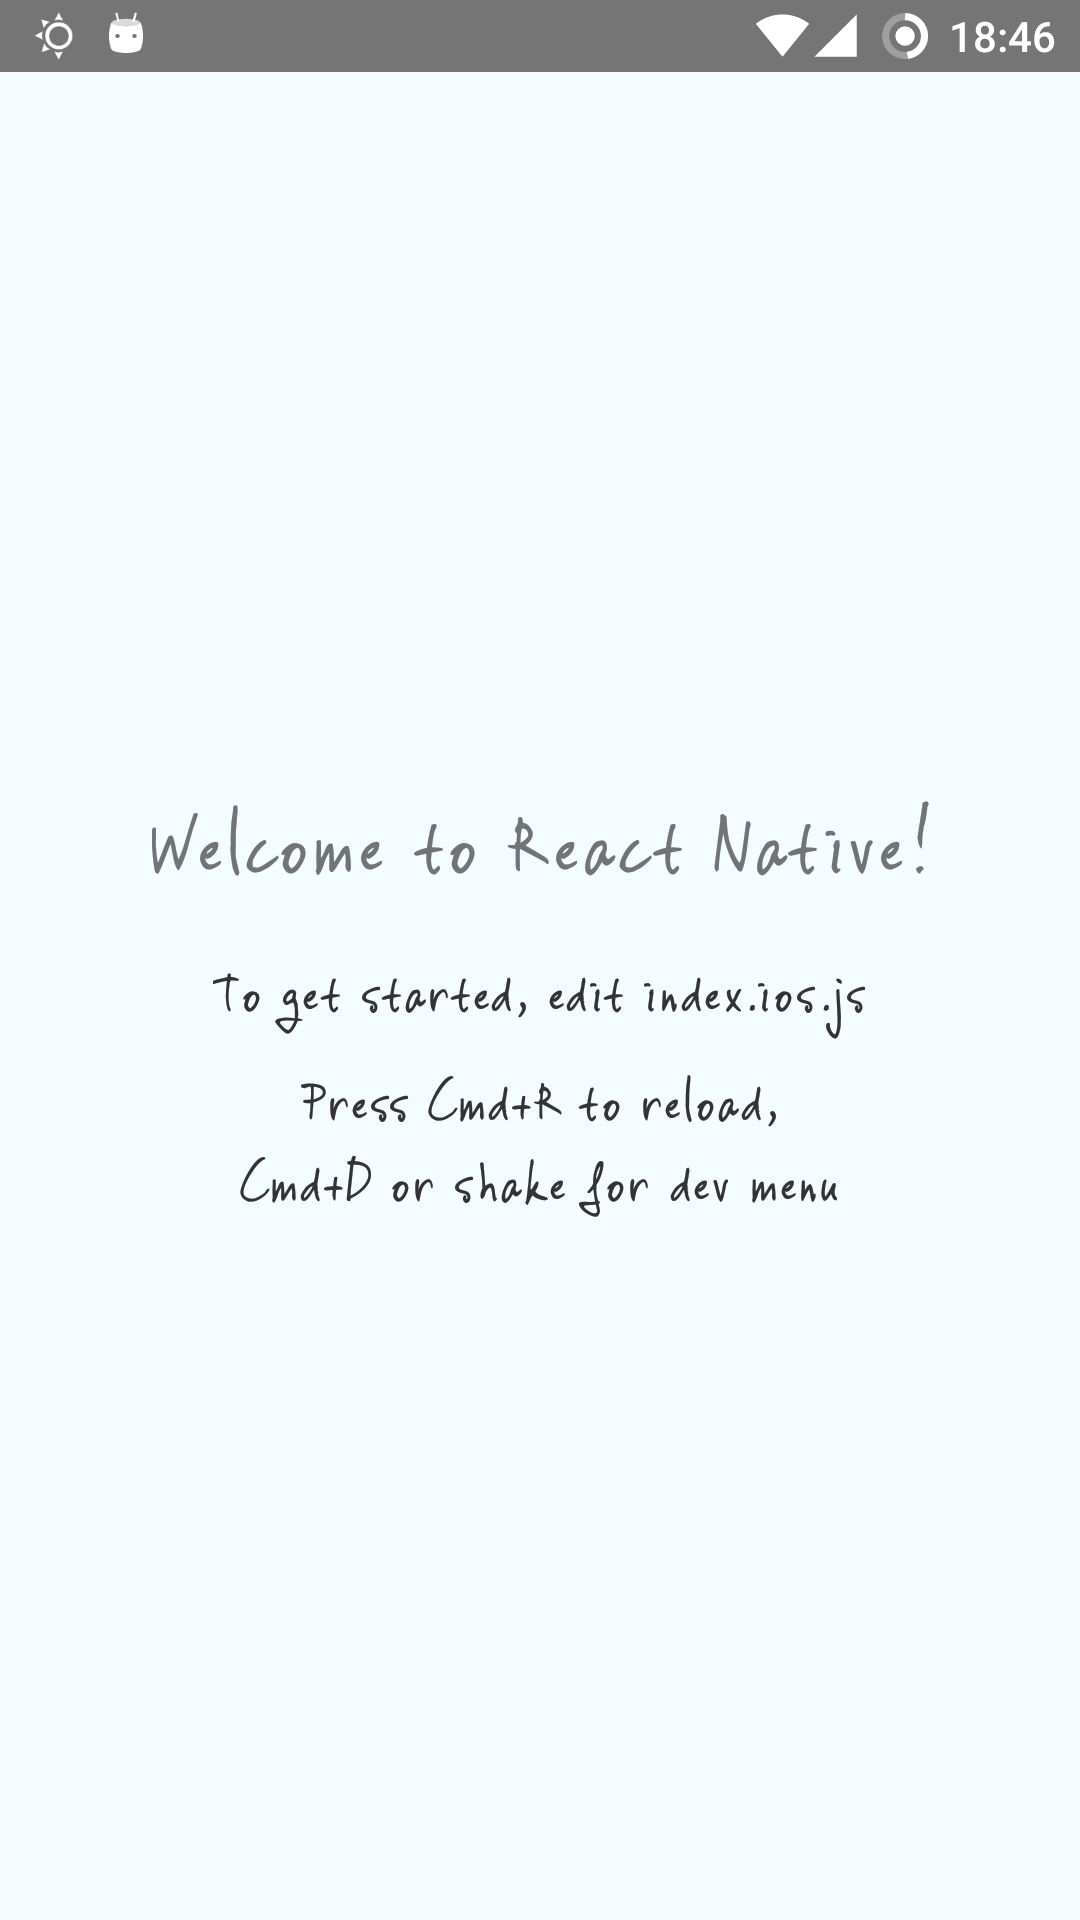 React Native Custom Fonts - React Native Training - Medium